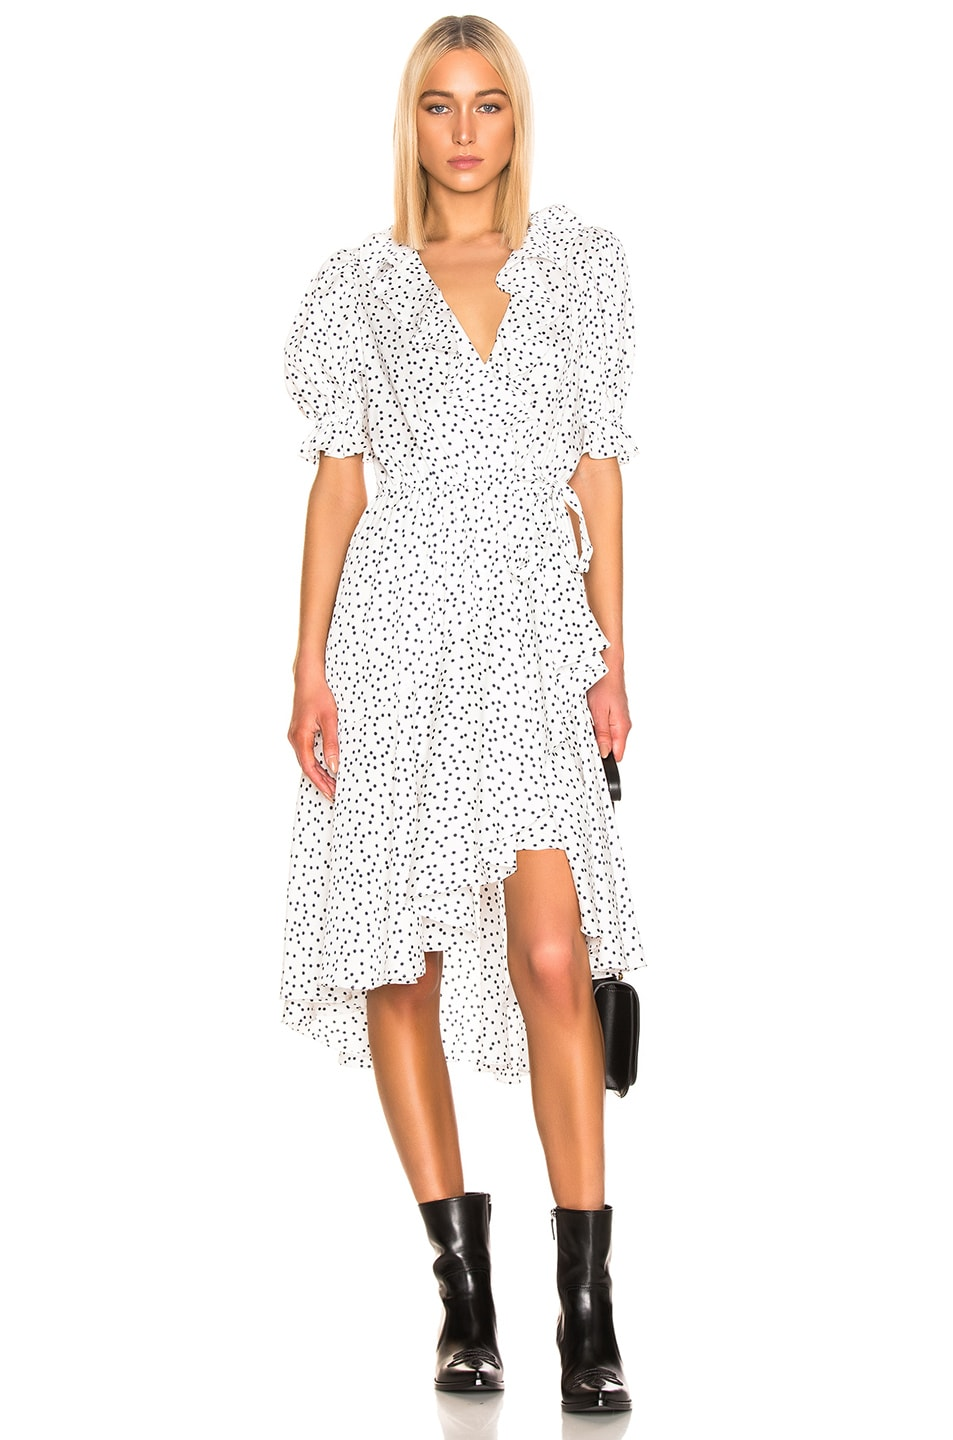 Image 1 of ICONS Objects of Devotion Cha Cha Dress in White & Navy Dot